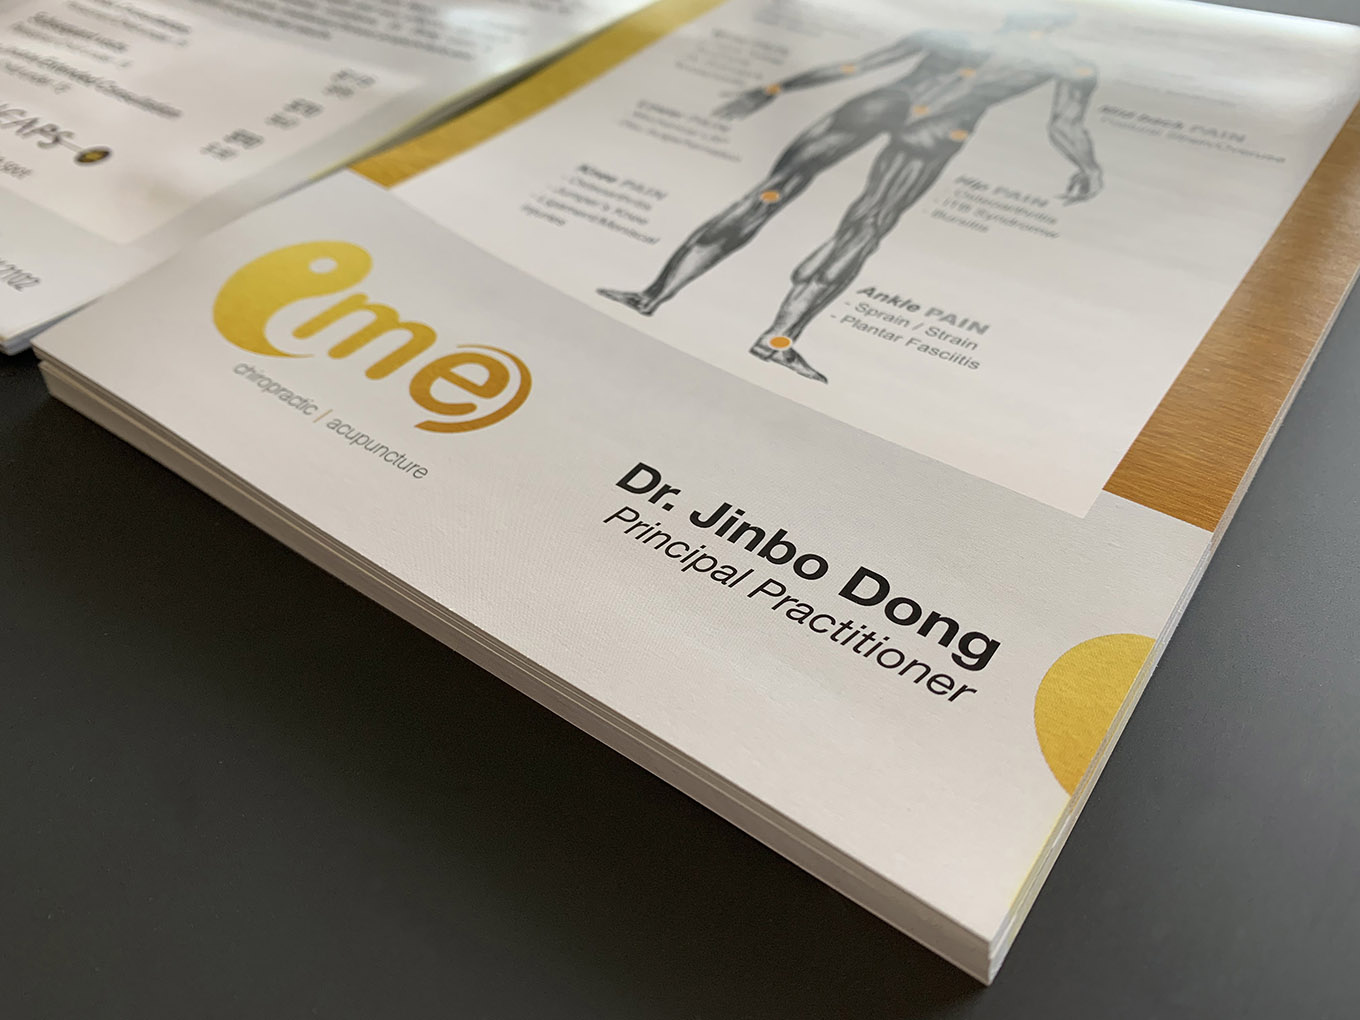 Creative Chiropractic clinic promotion design by FOX DESIGN